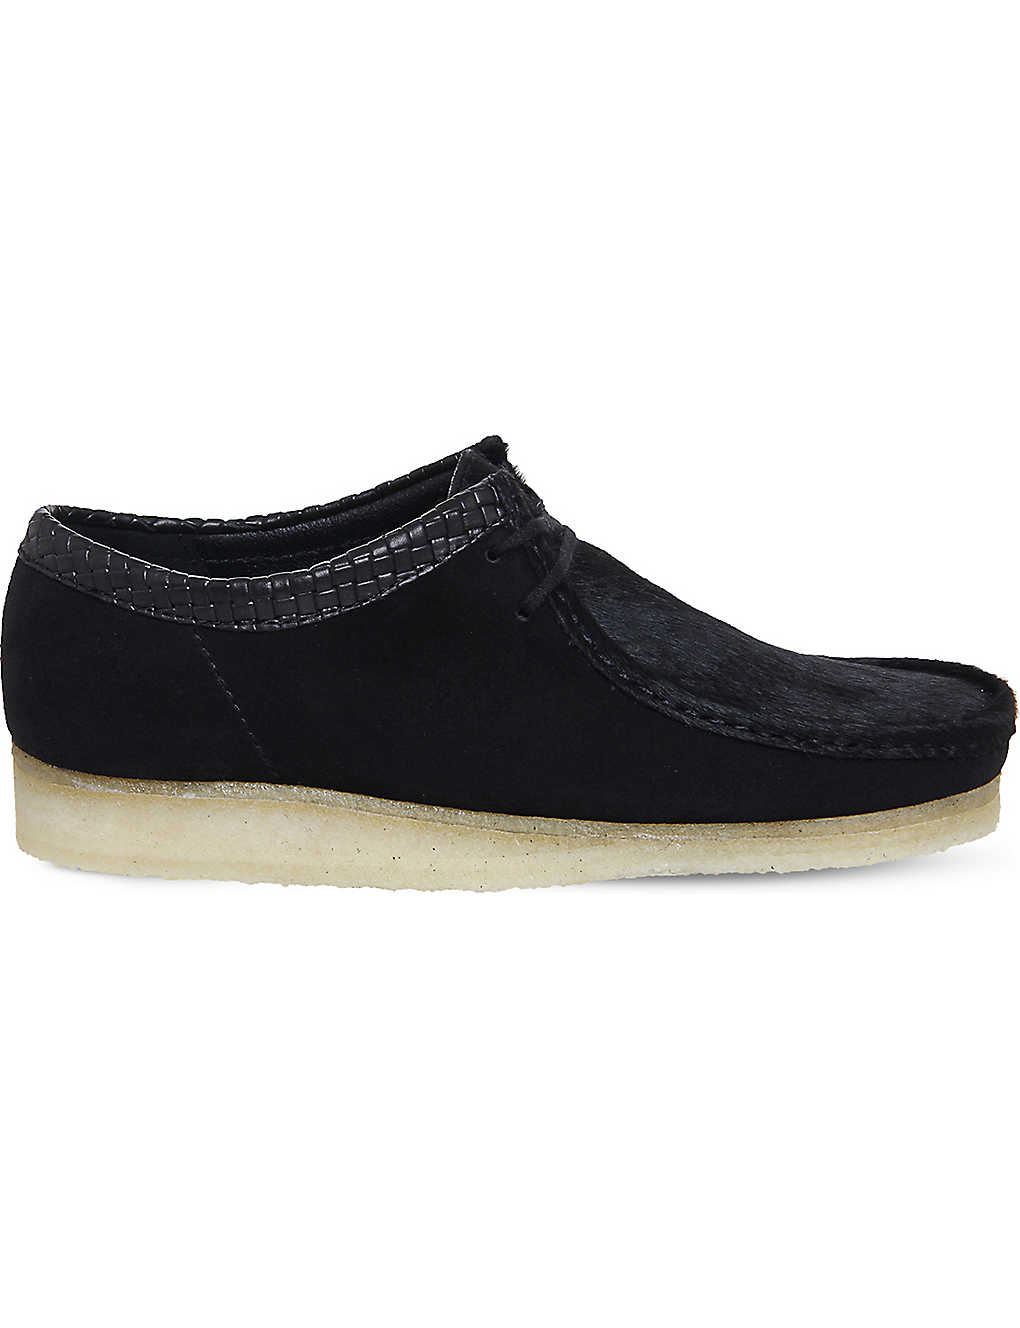 1daf1bfe CLARKS ORIGINALS - Wallabee suede and pony-hair derby shoes ...